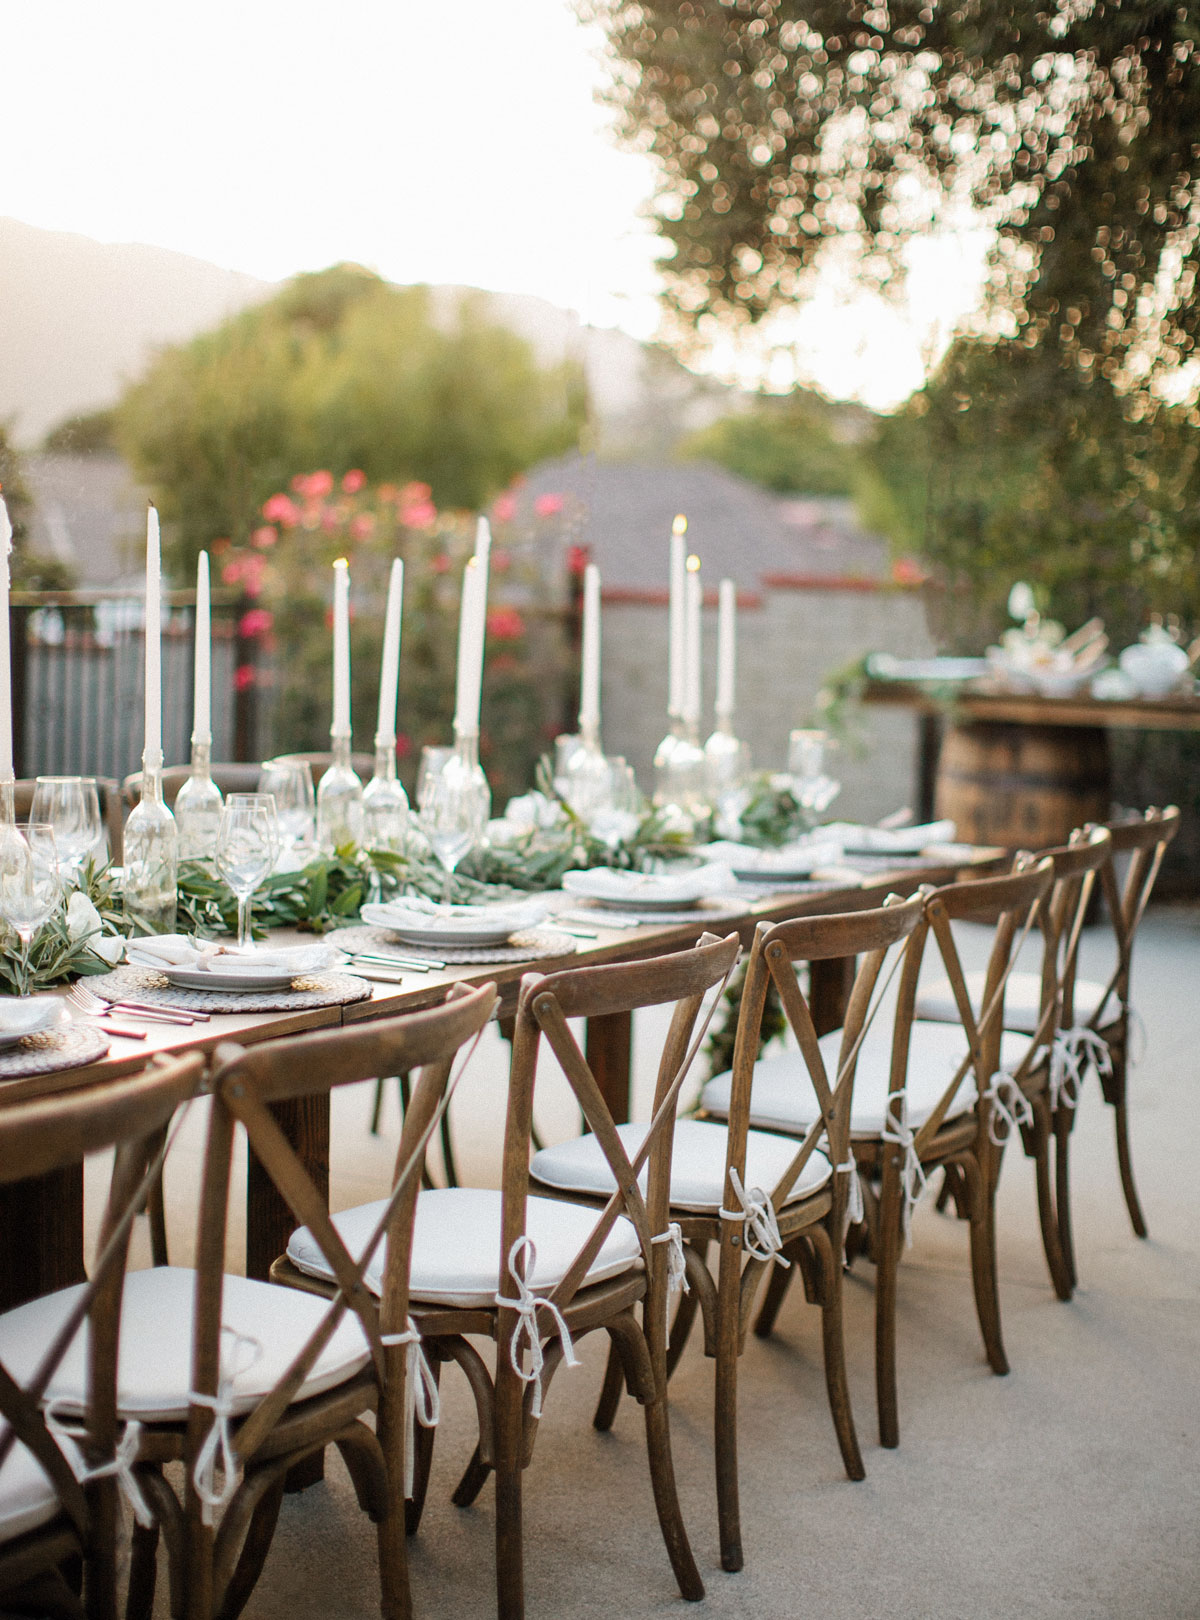 Held At The Backyard Of My Parents Home We Displayed An Ultimate Romantic Sonoma Feel Event Using Braided Placemats Lush Garlands Olive And